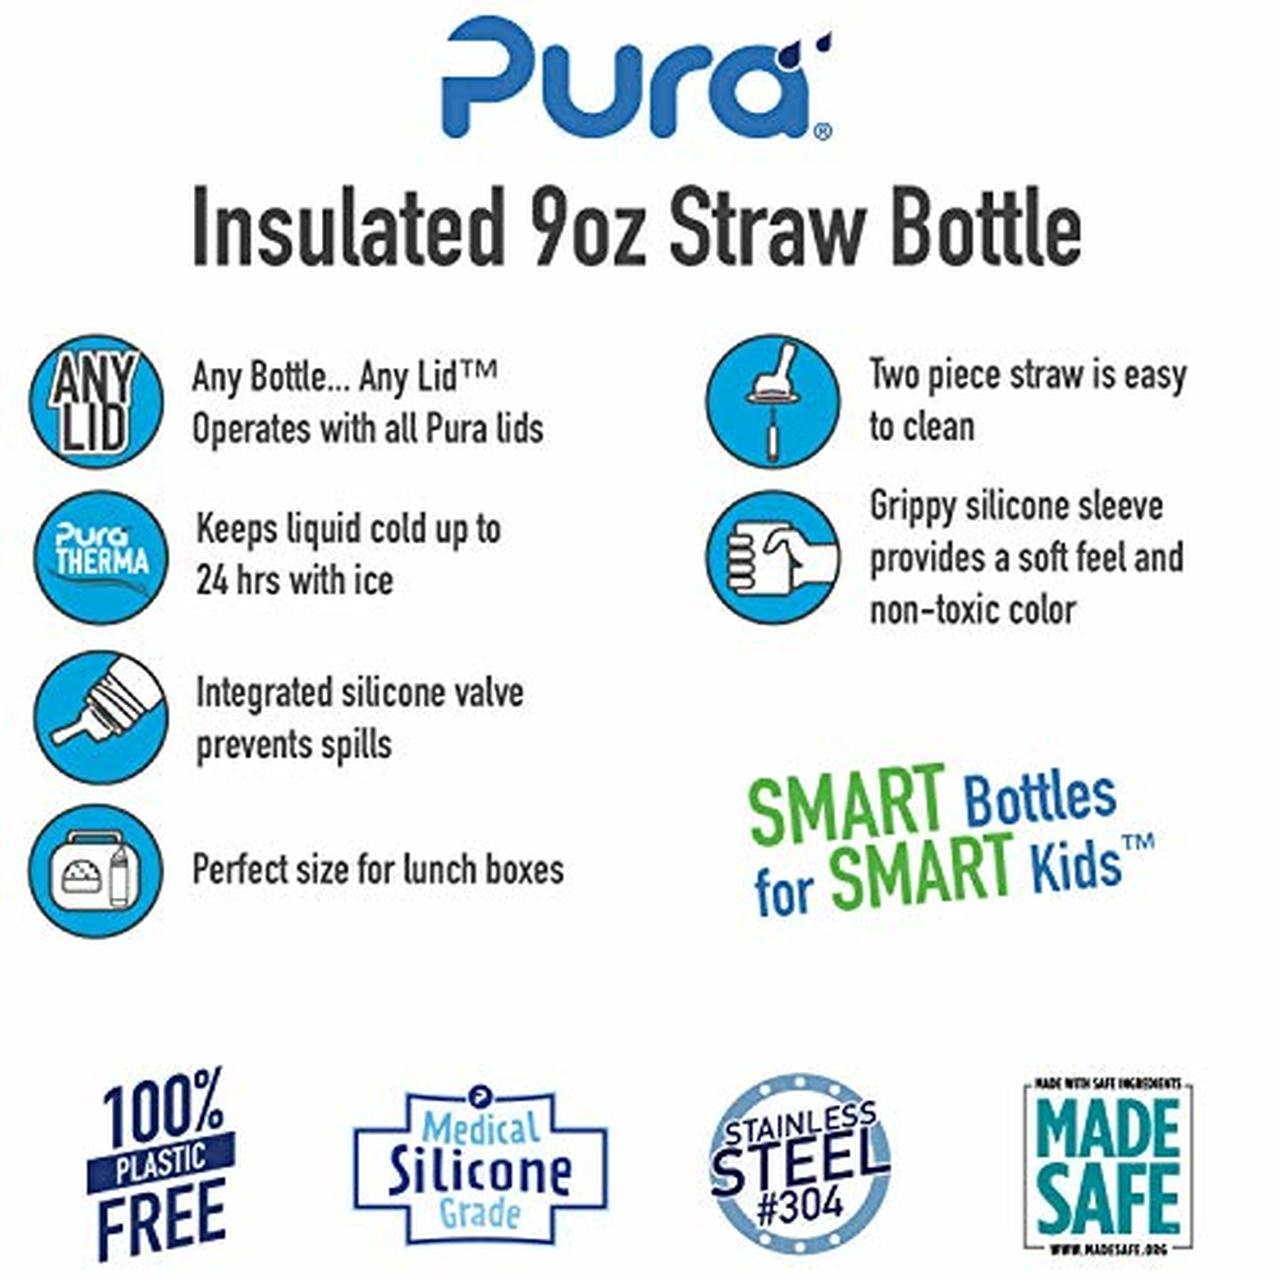 Pura Stainless 9oz Insulated Straw Bottle- Aqua